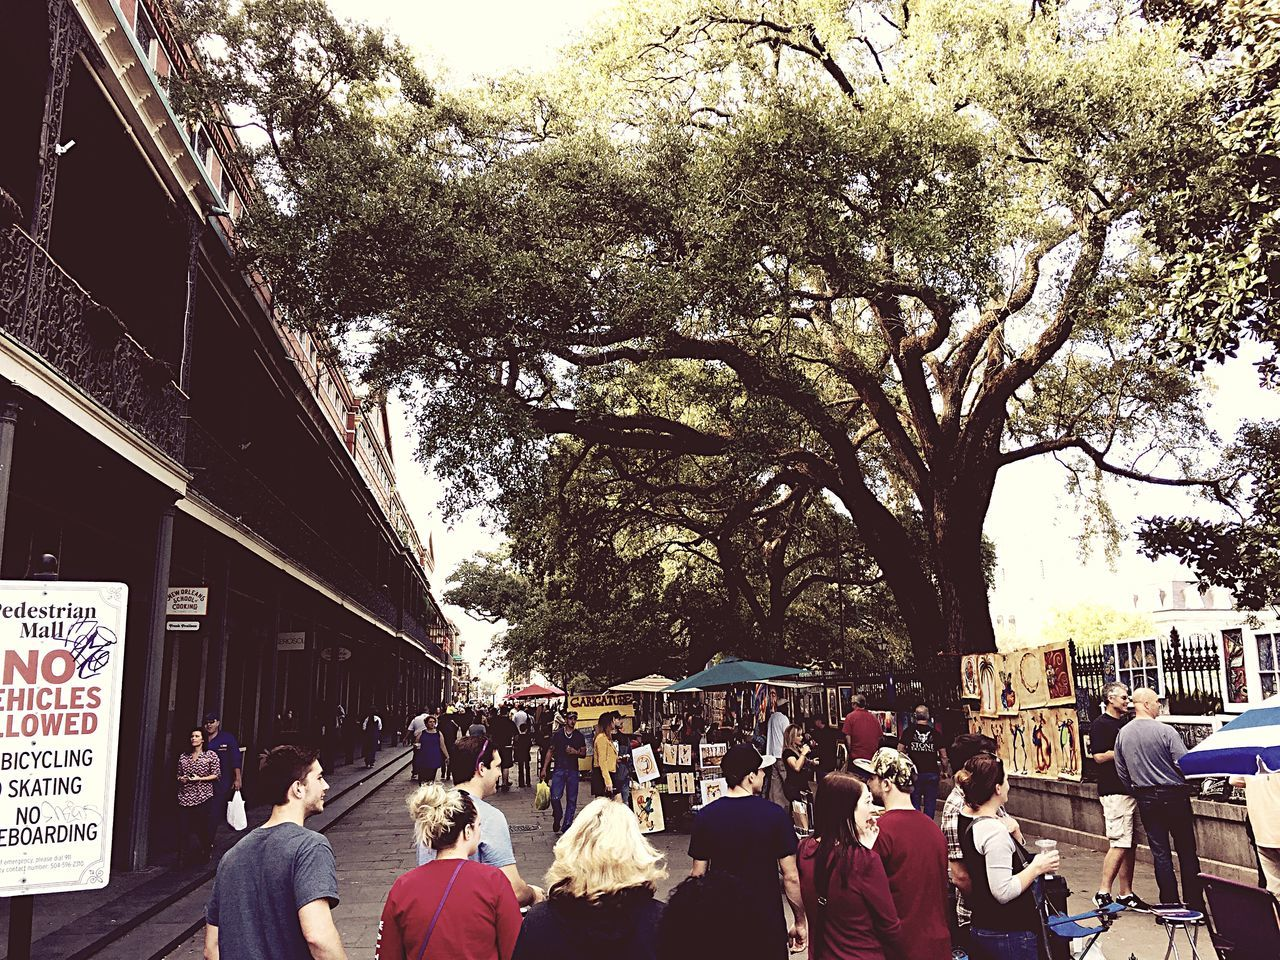 Tree Large Group Of People Building Exterior Women Men Architecture Built Structure Outdoors Growth City Real People Day Crowd Adults Only Nature Adult People Jackson Square